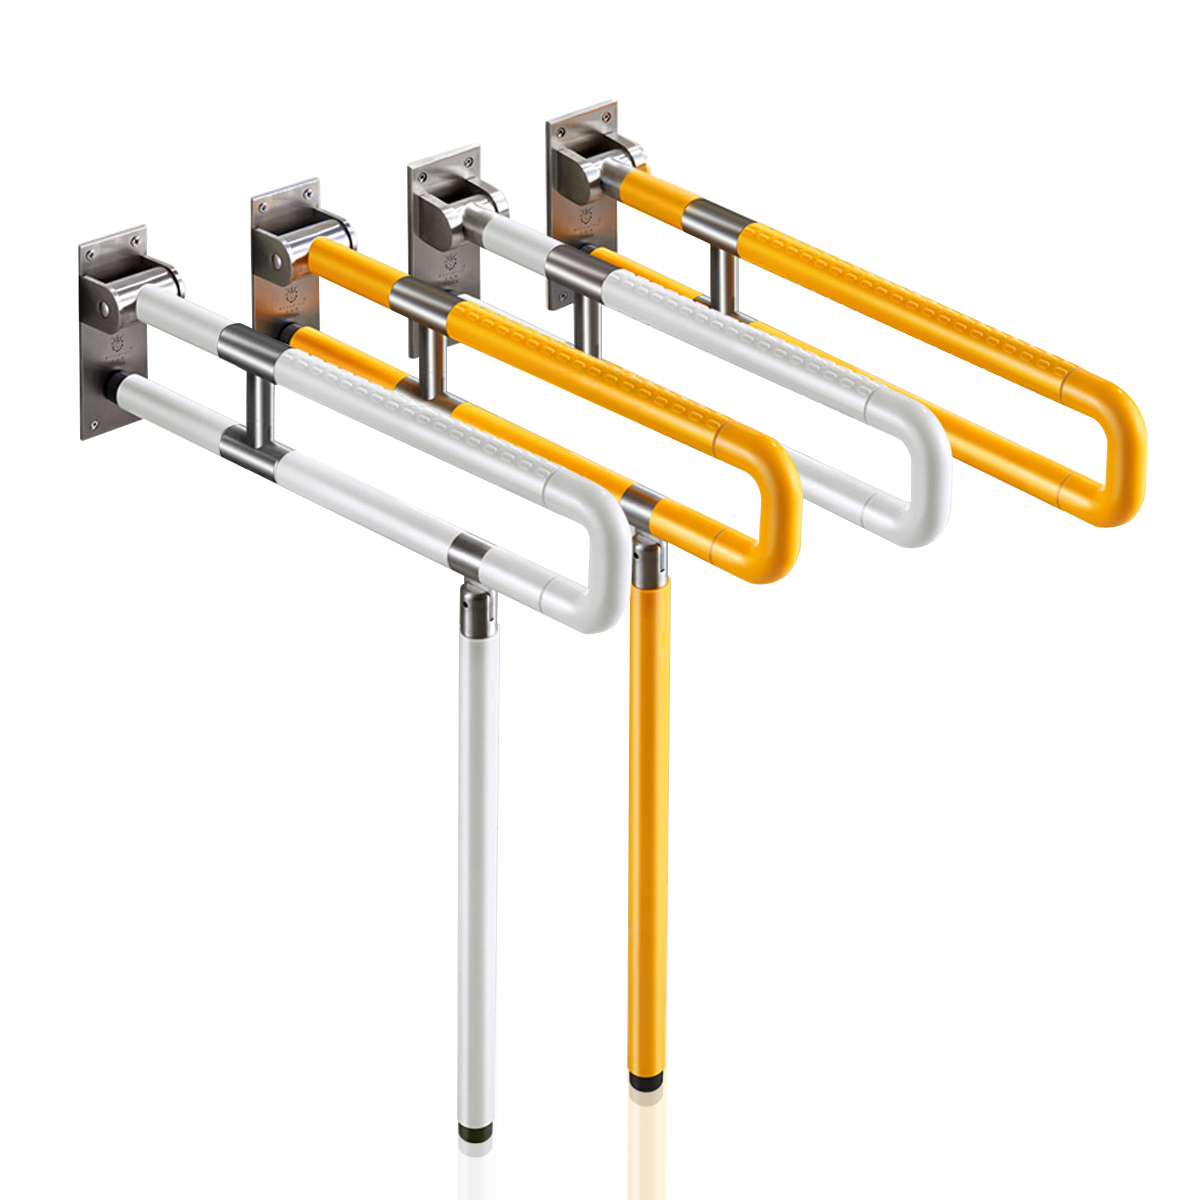 60/75cm Barrier-Free Stainless Steel Toilet Bathroom Grab Bar Elderly Disability Safety Handrail Folding Handrail Yellow Safety